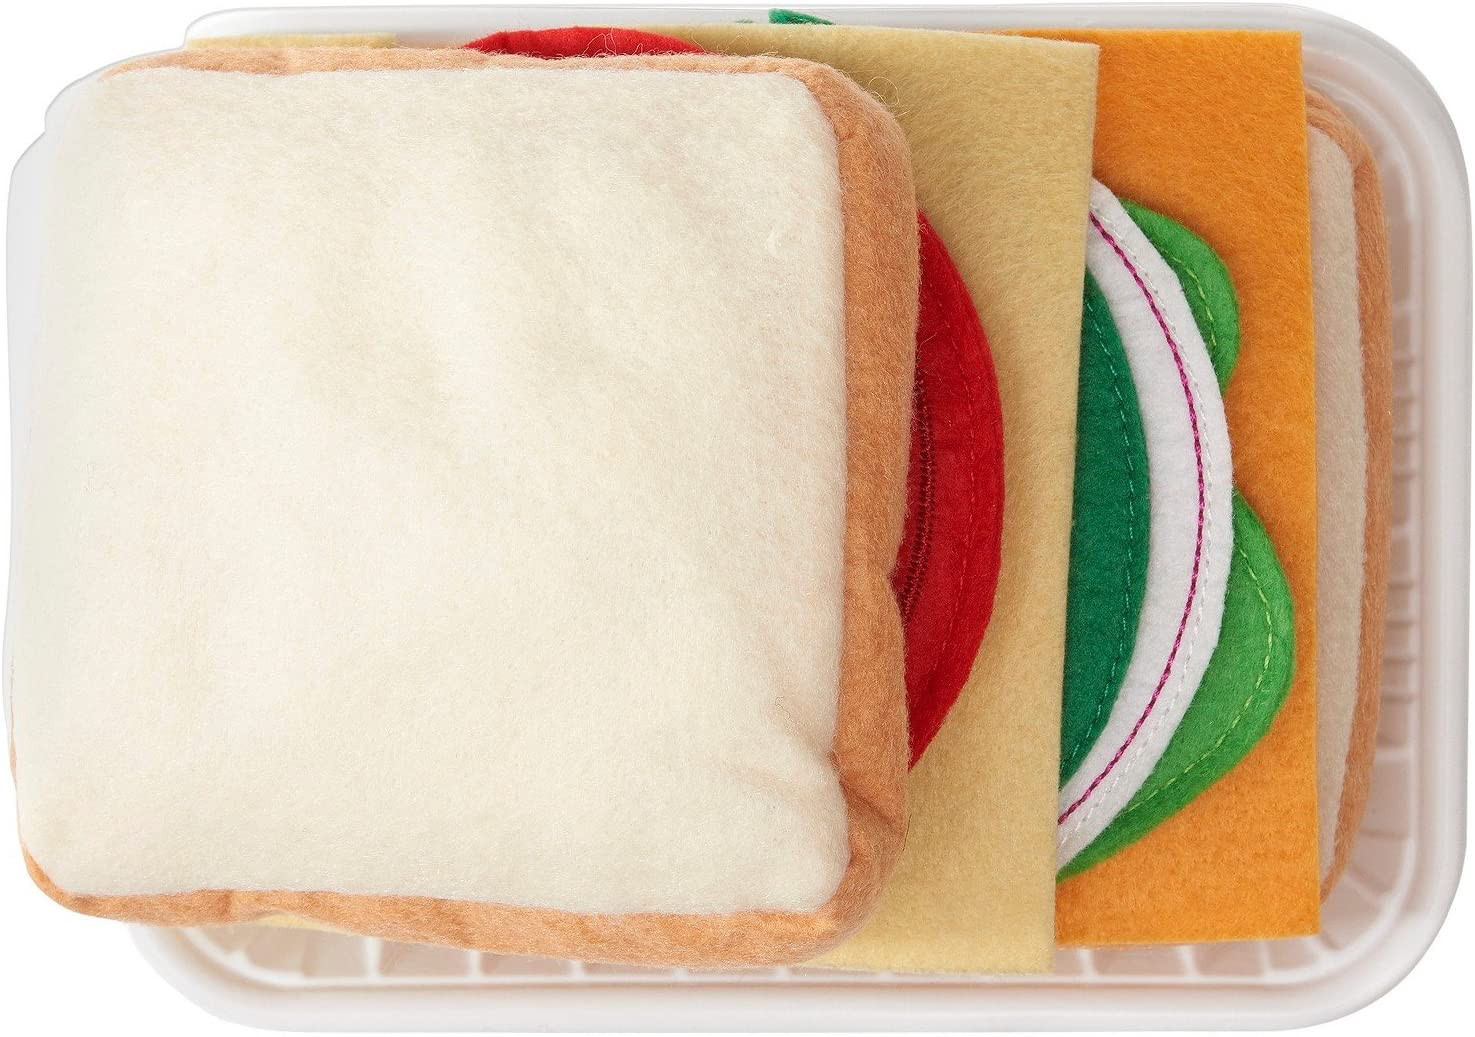 Antsy Pants Play Food Felt - Sandwich